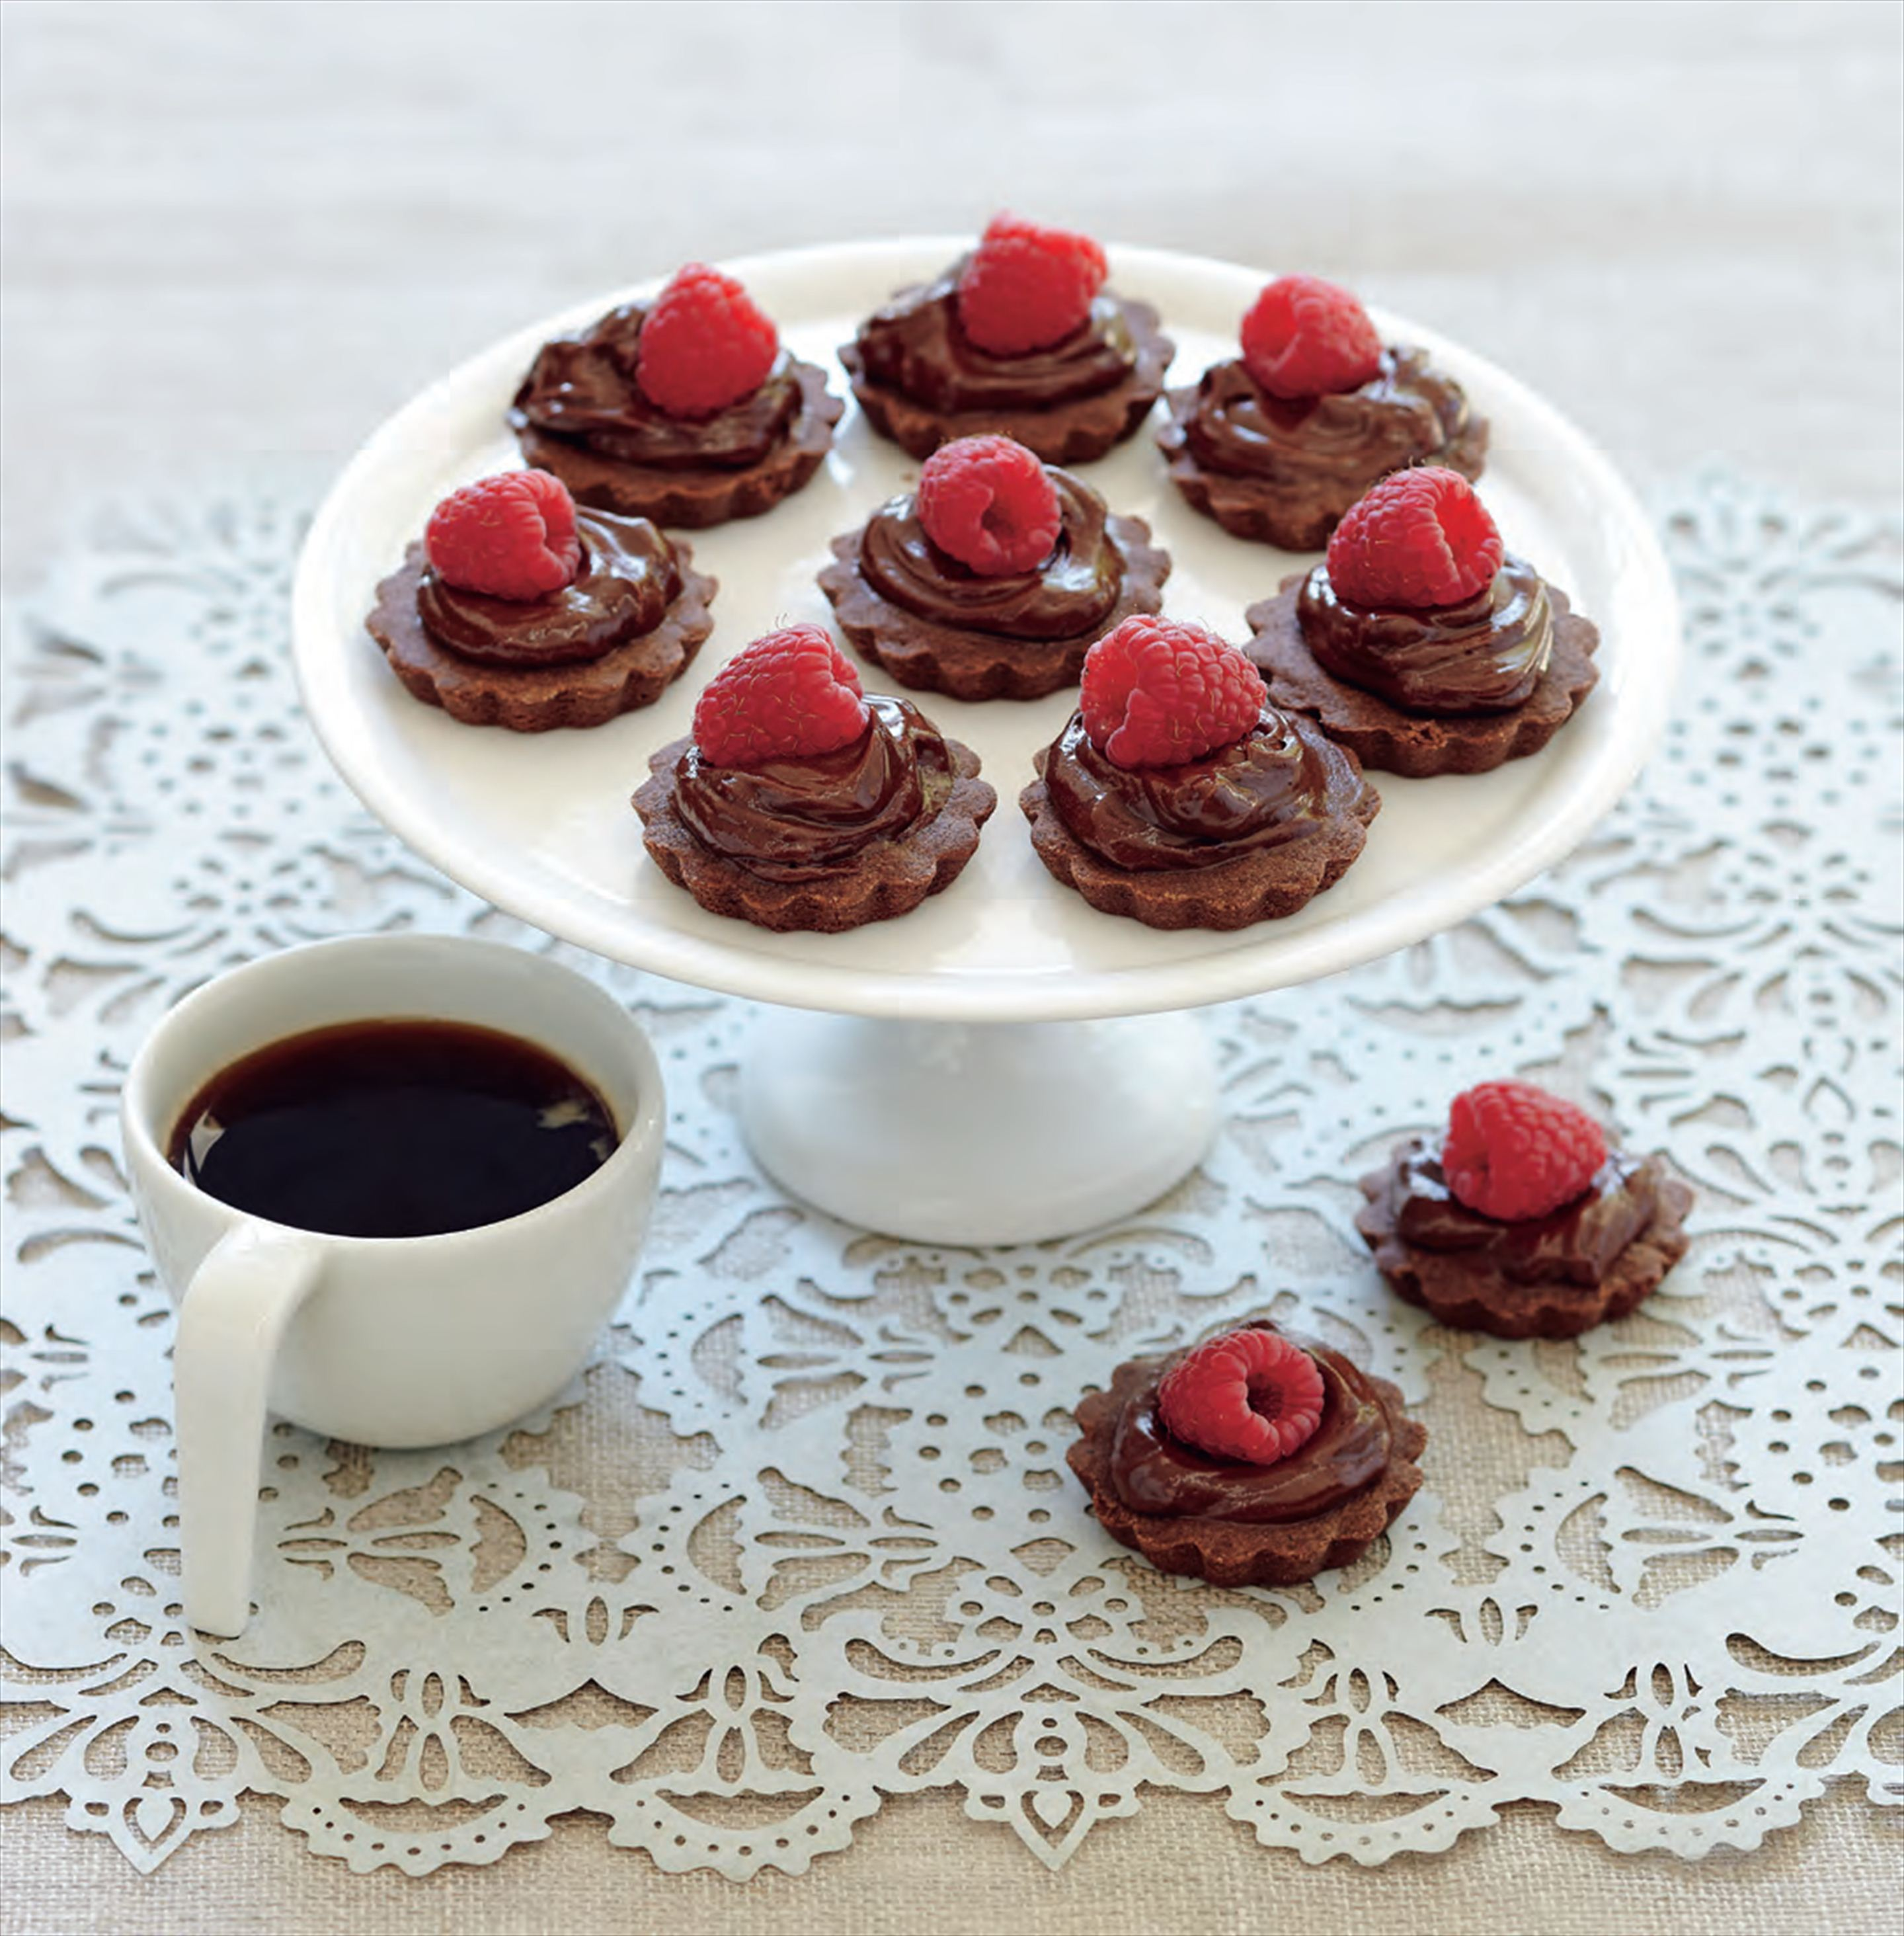 Chocolate tarts with raspberry